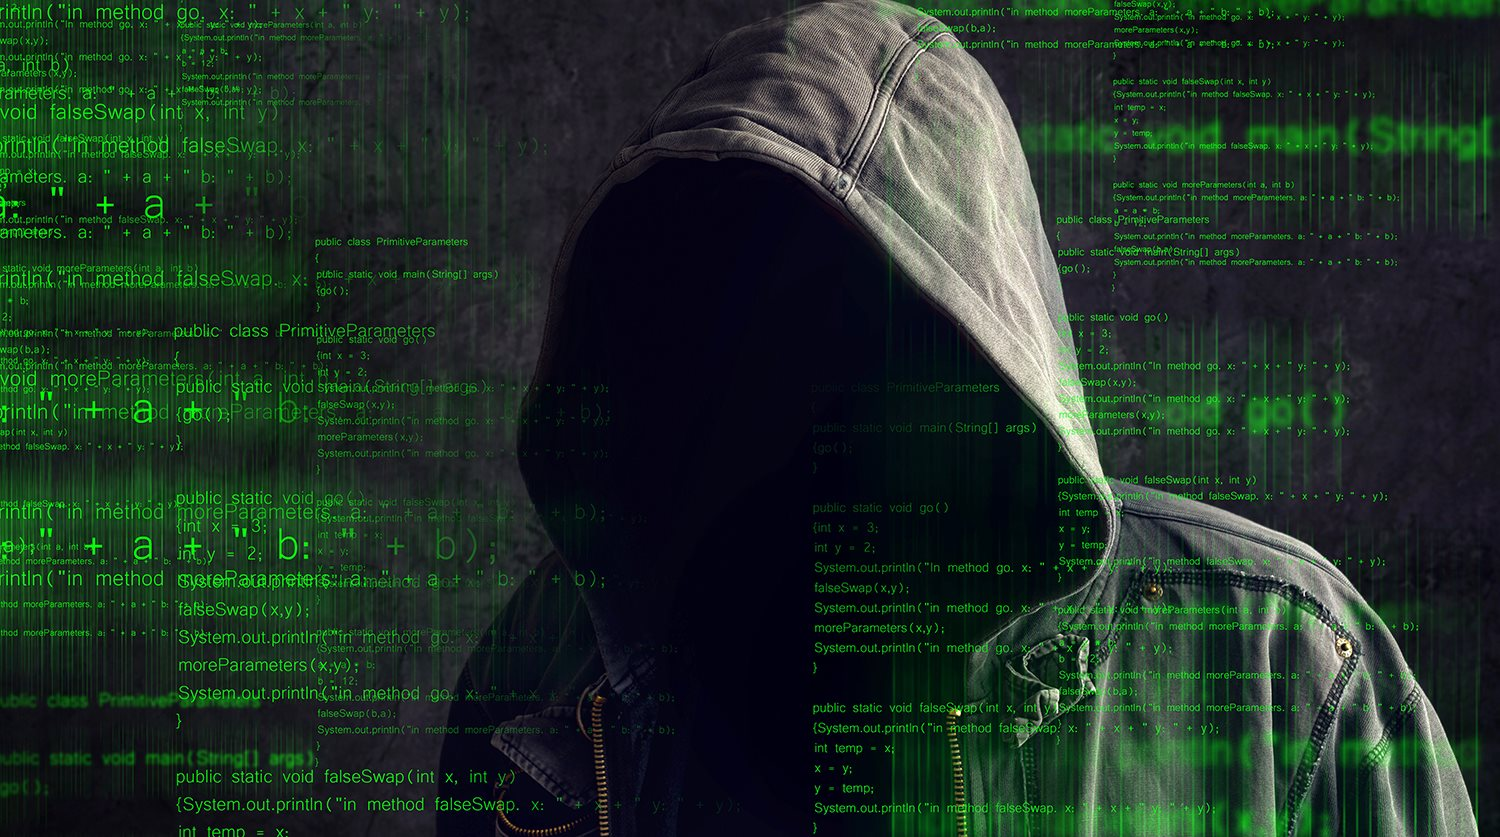 The hackers posted a database of 773 millions of e-mail addresses and 22 million passwords